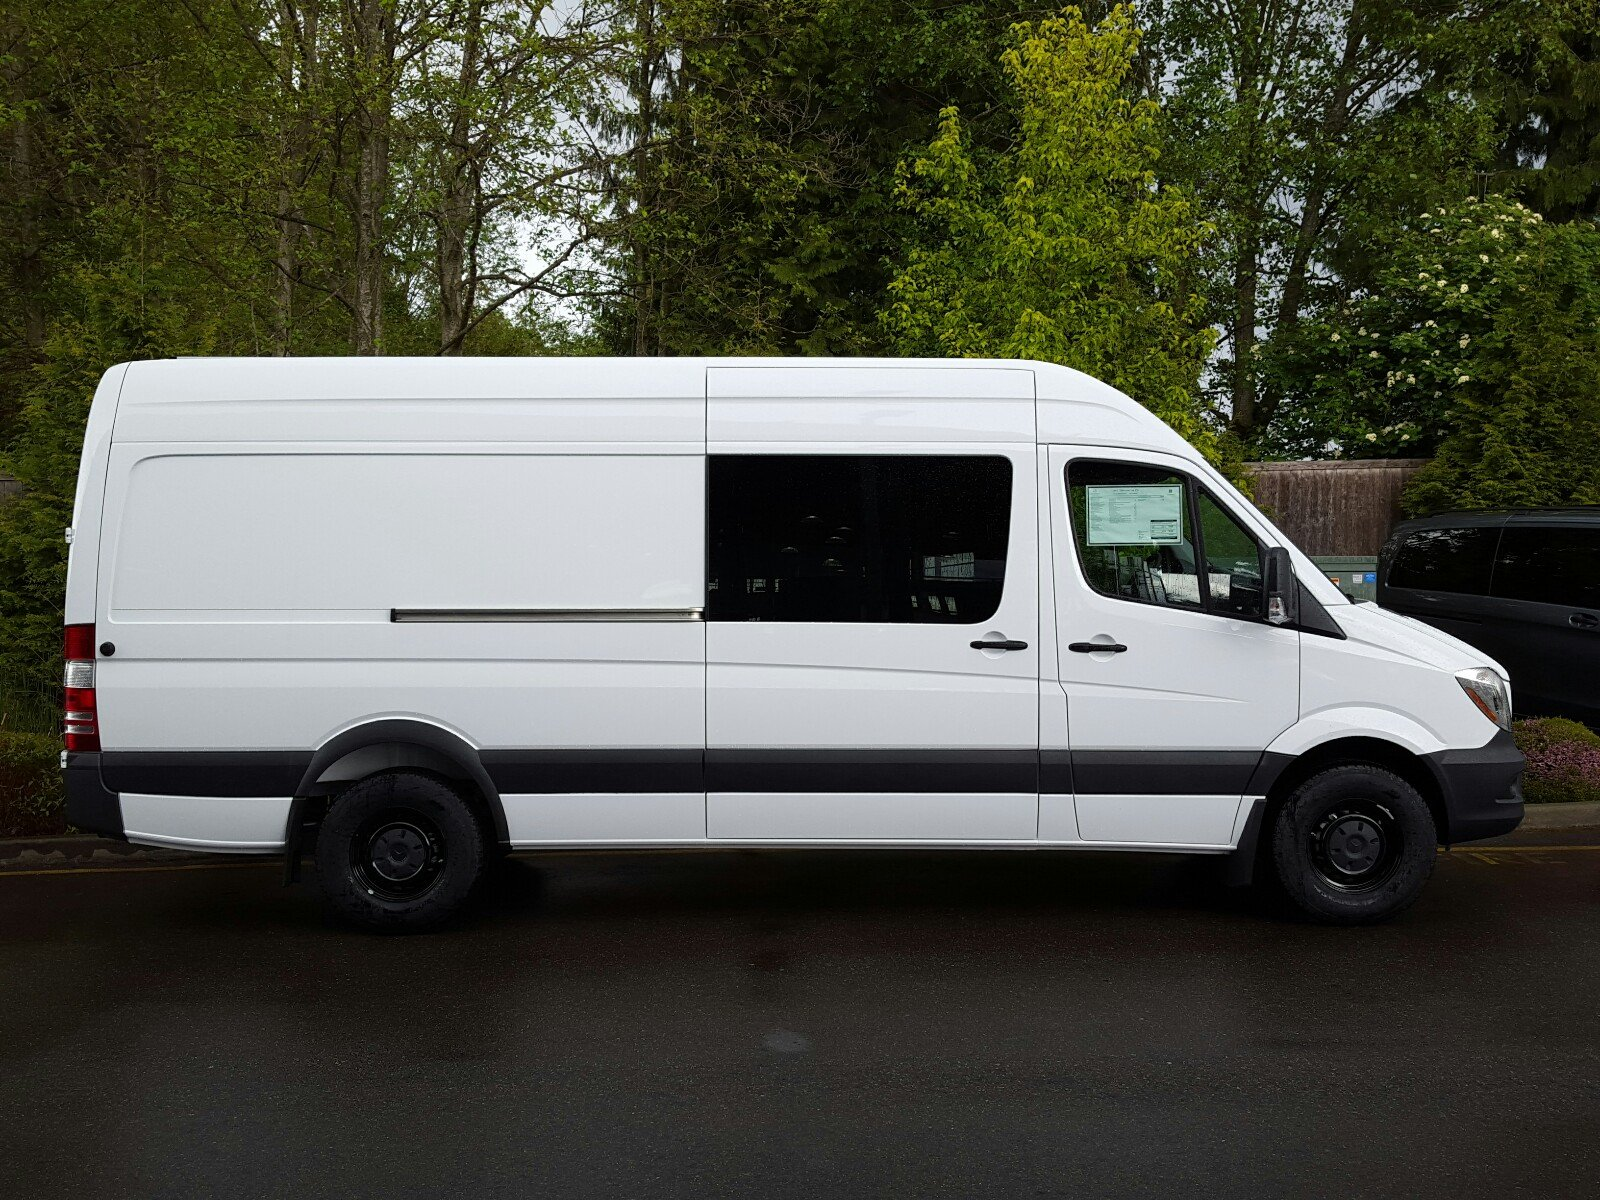 26363cecf2499df19ce393937f7af9a5 new mercedes benz sprinter crew vans mercedes benz of lynnwood  at webbmarketing.co